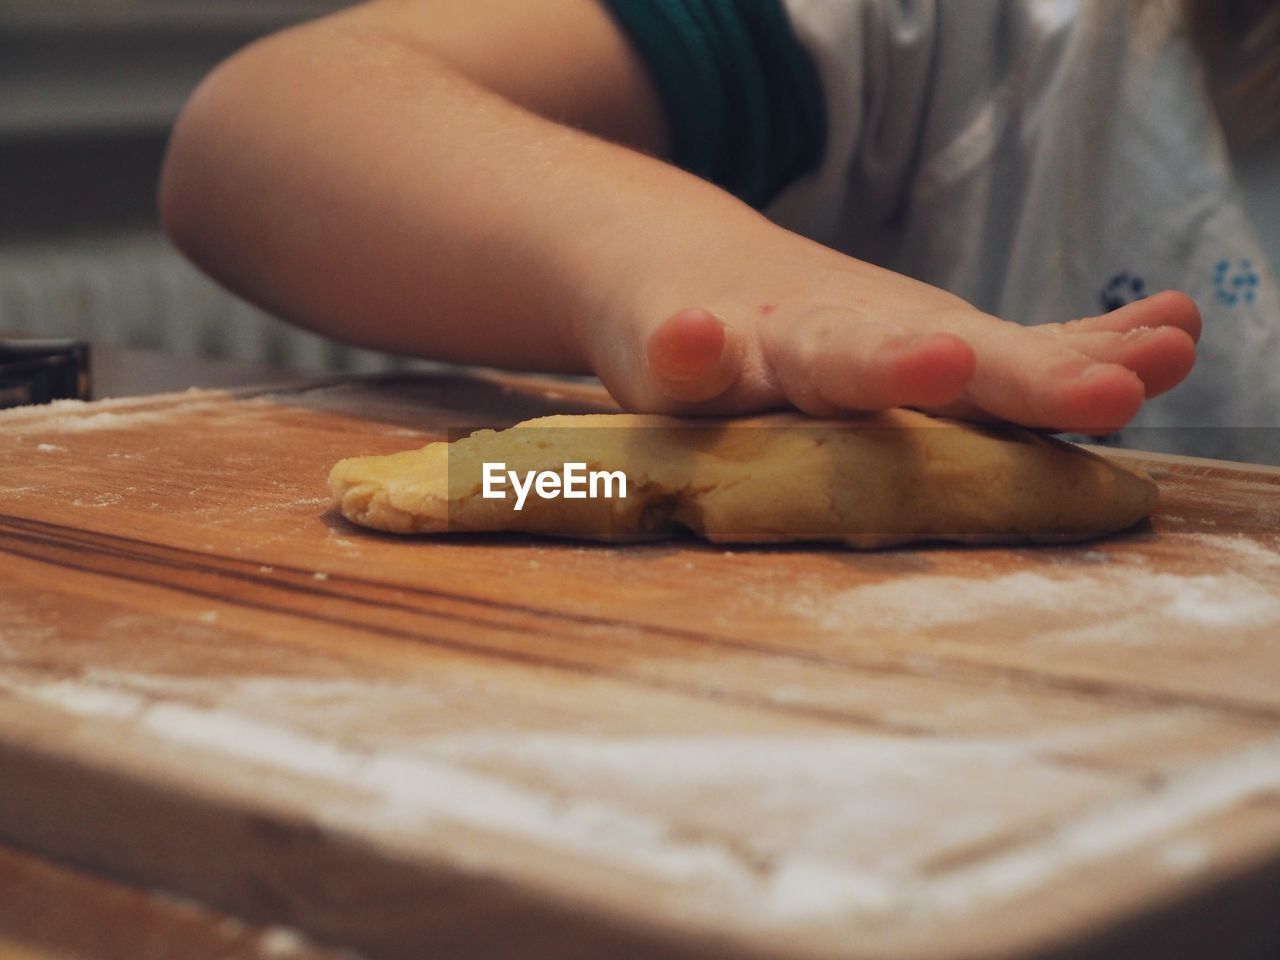 food and drink, food, freshness, preparation, dough, indoors, one person, selective focus, preparing food, real people, human hand, domestic room, midsection, hand, kitchen, wood - material, homemade, cutting board, table, close-up, chef, kneading, baked pastry item